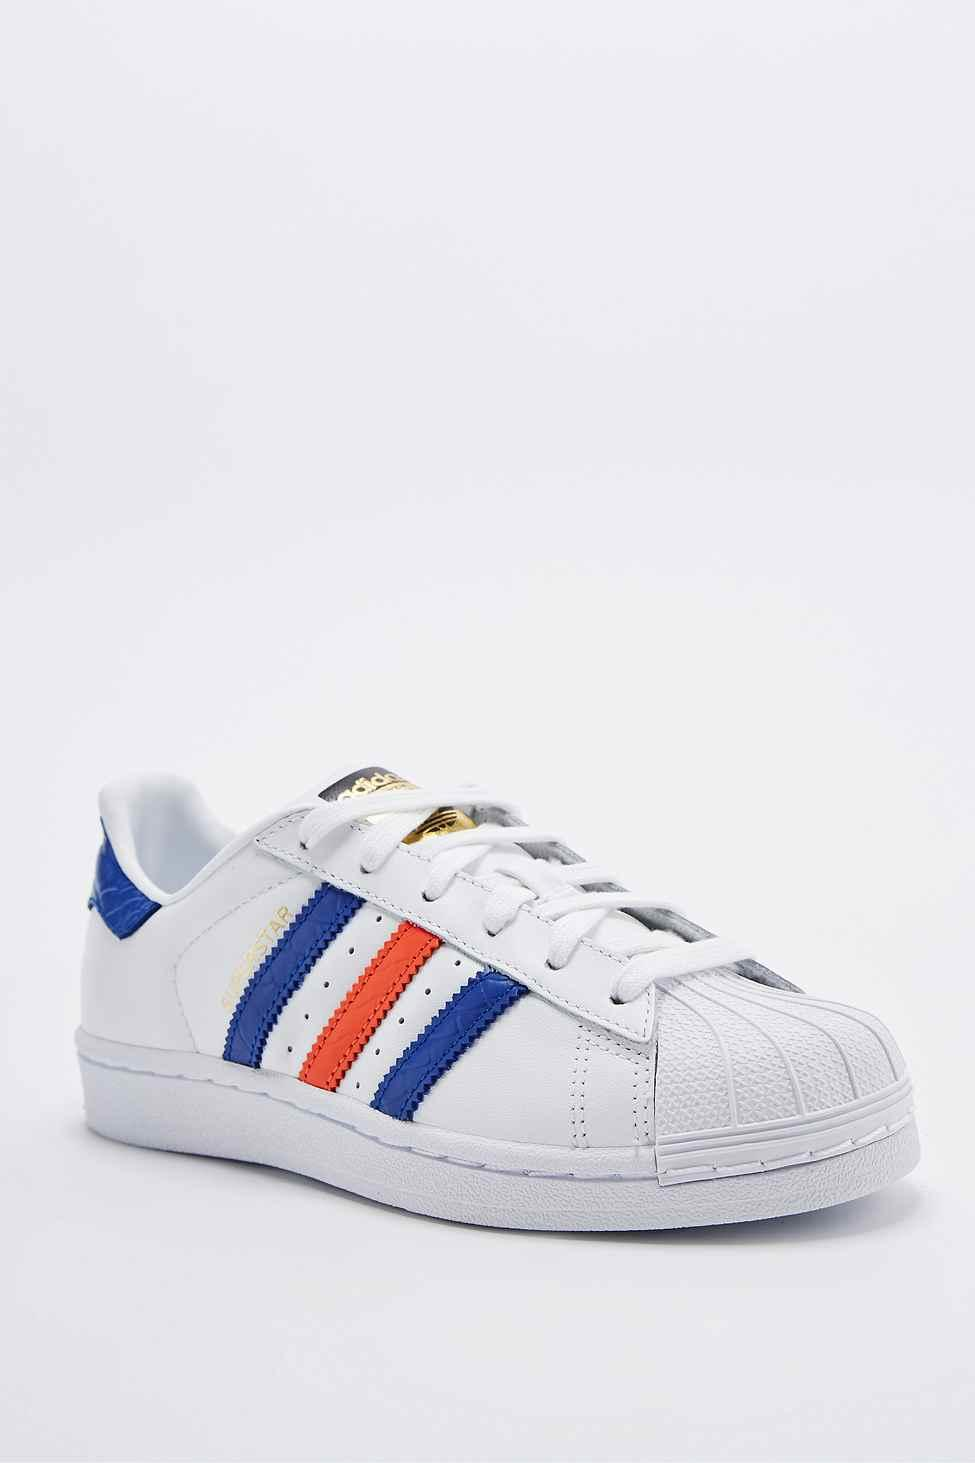 Adidas Superstar East River Rivalry from Urban Outfitters 6af4a21ad890